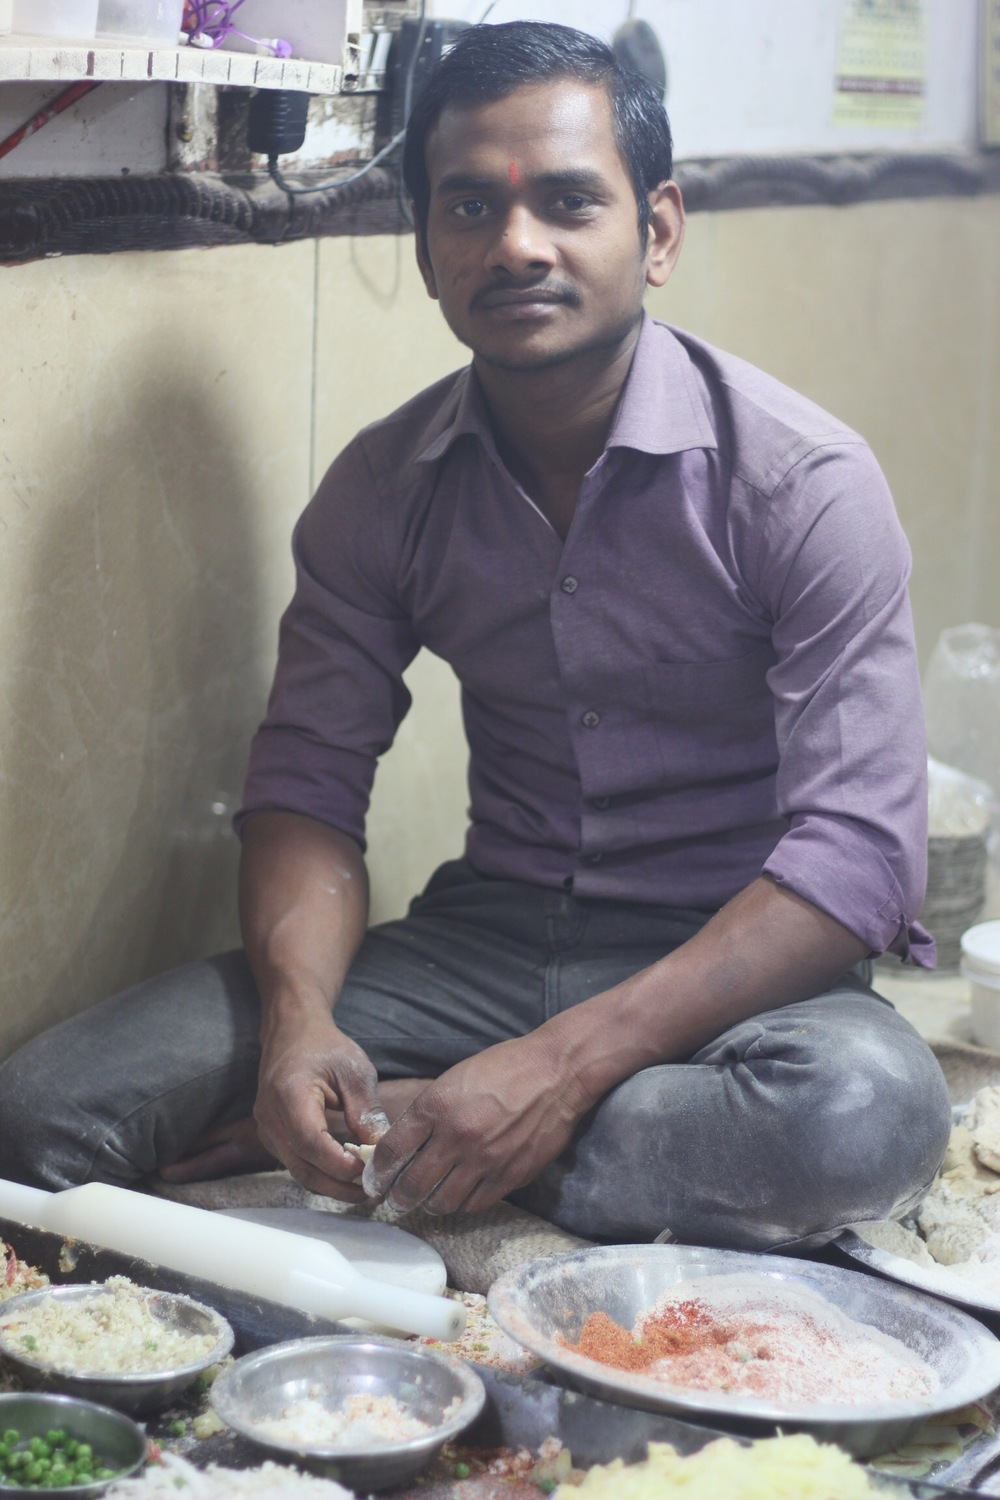 6th generation paratha master at Parantha Wali Gali, Delhi